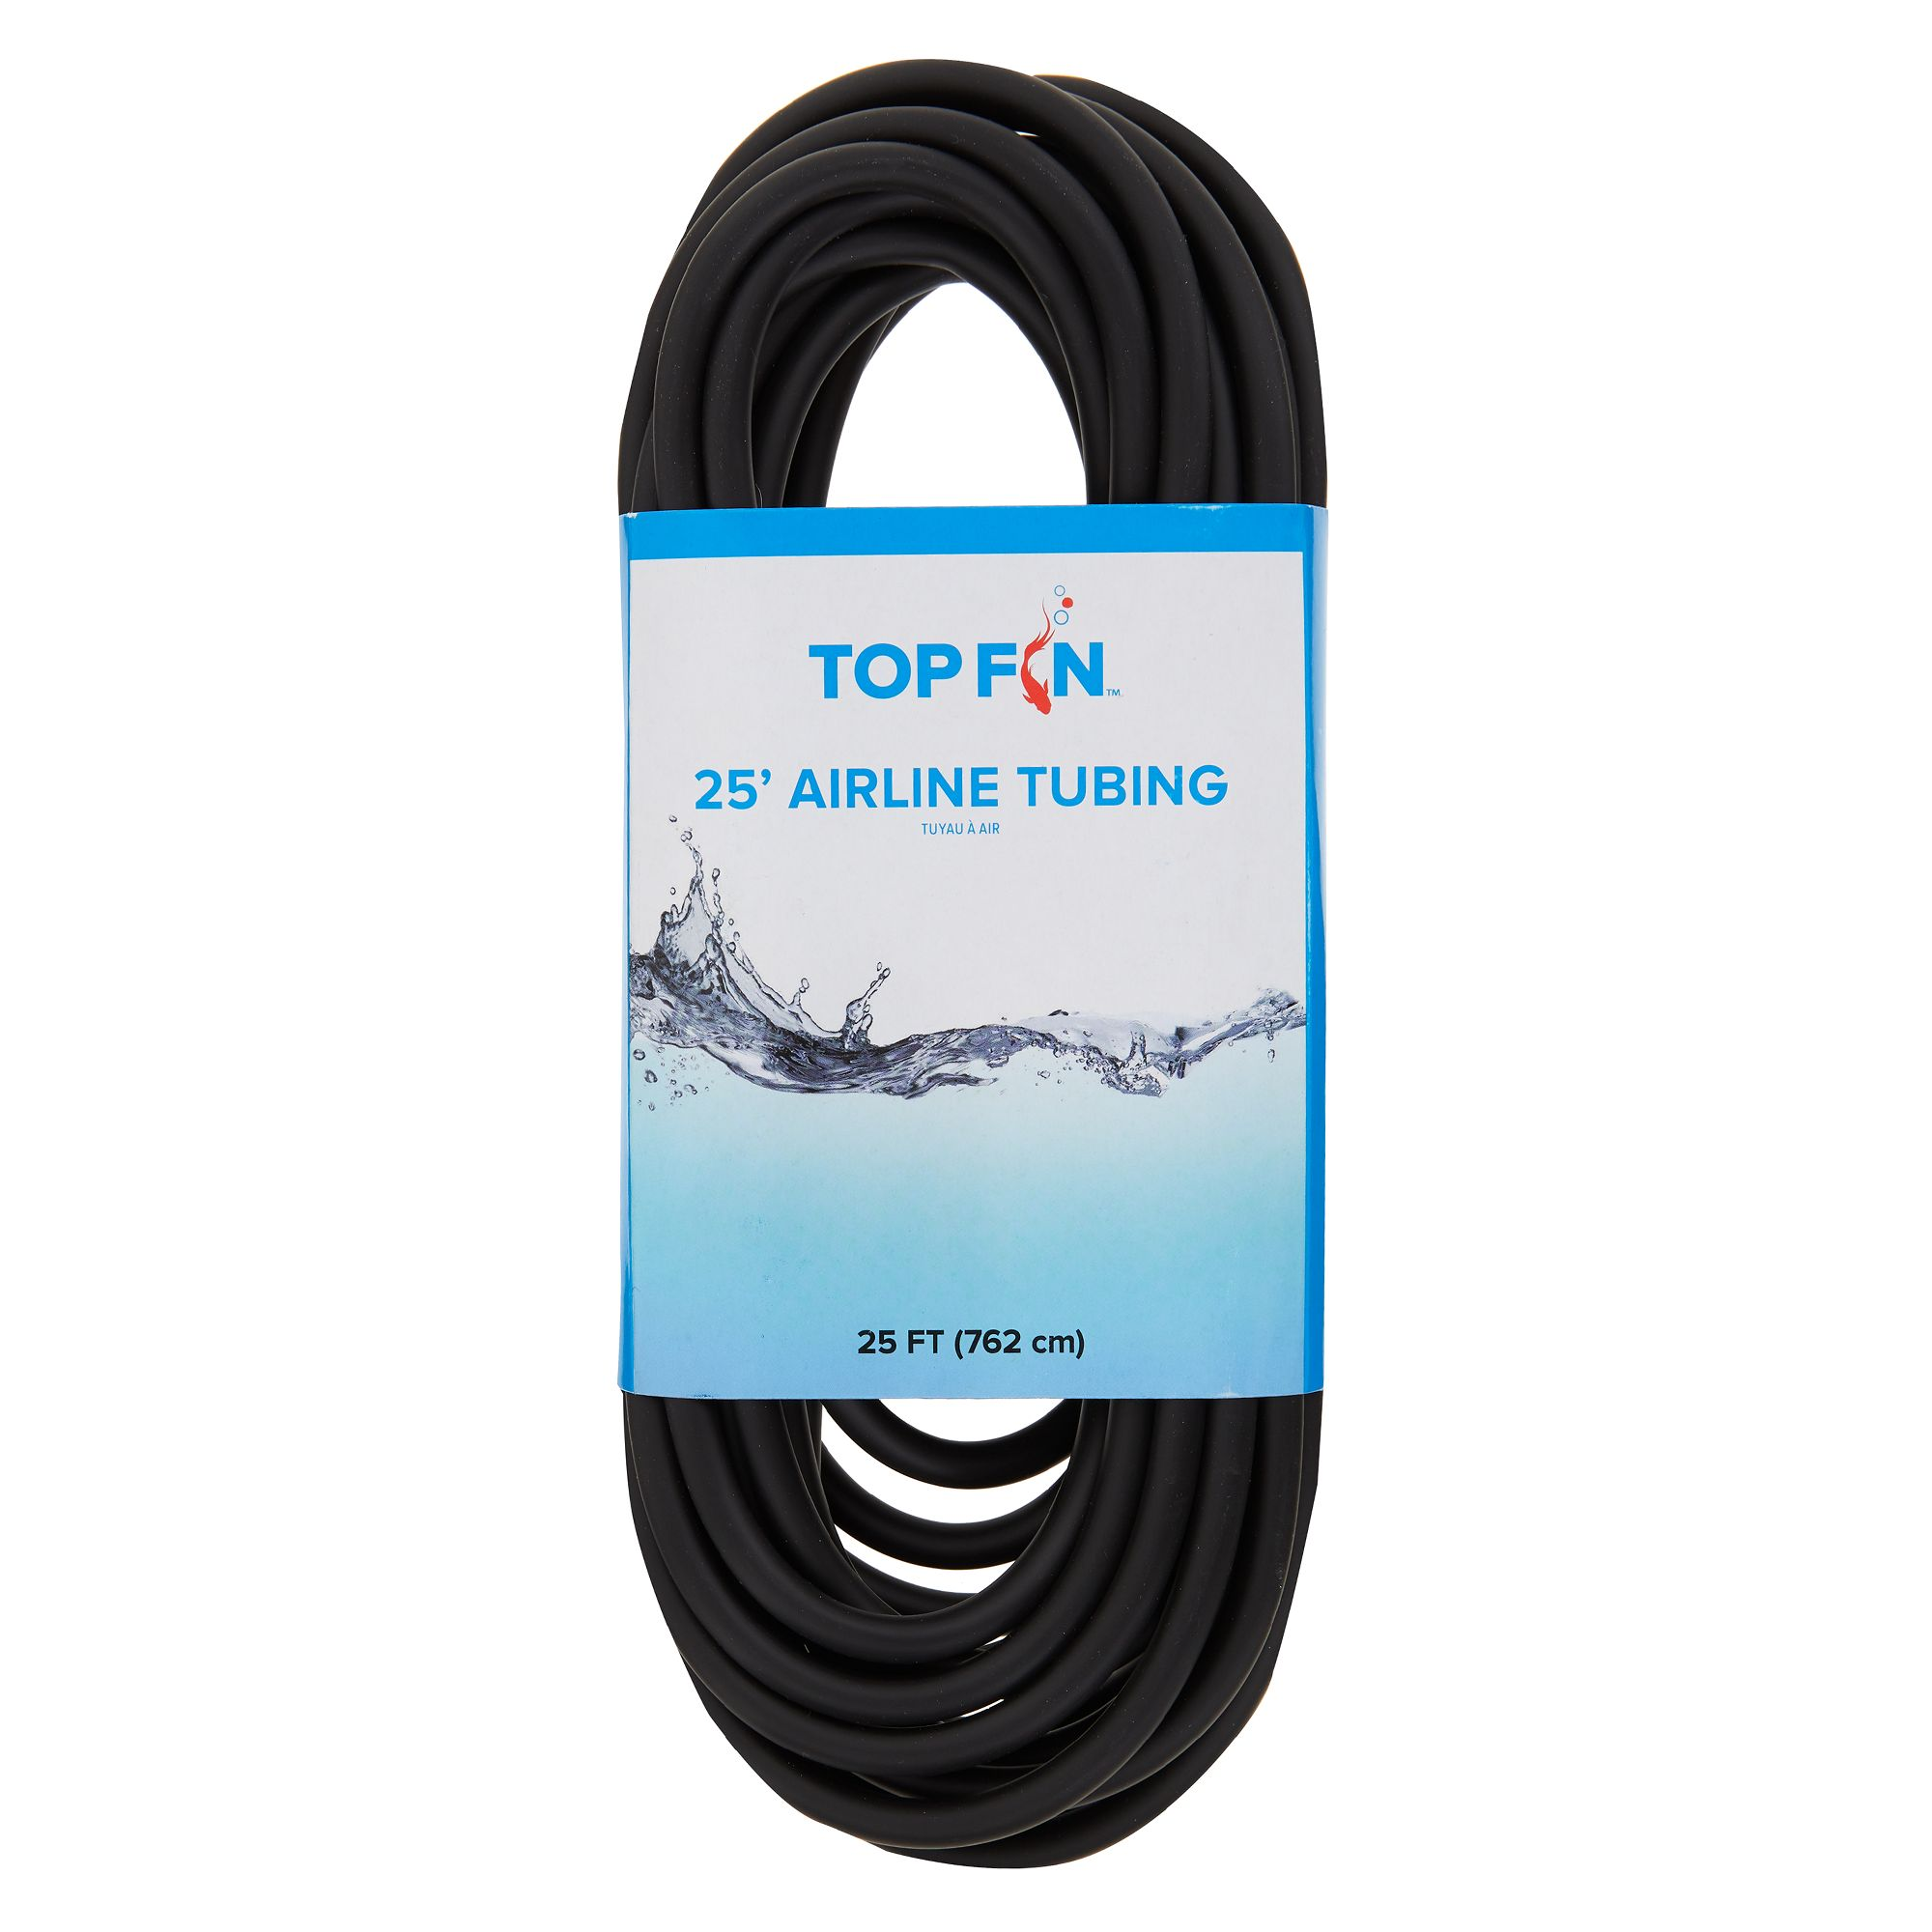 Top Fin Silicone Airline Tubing Size 25 Ft